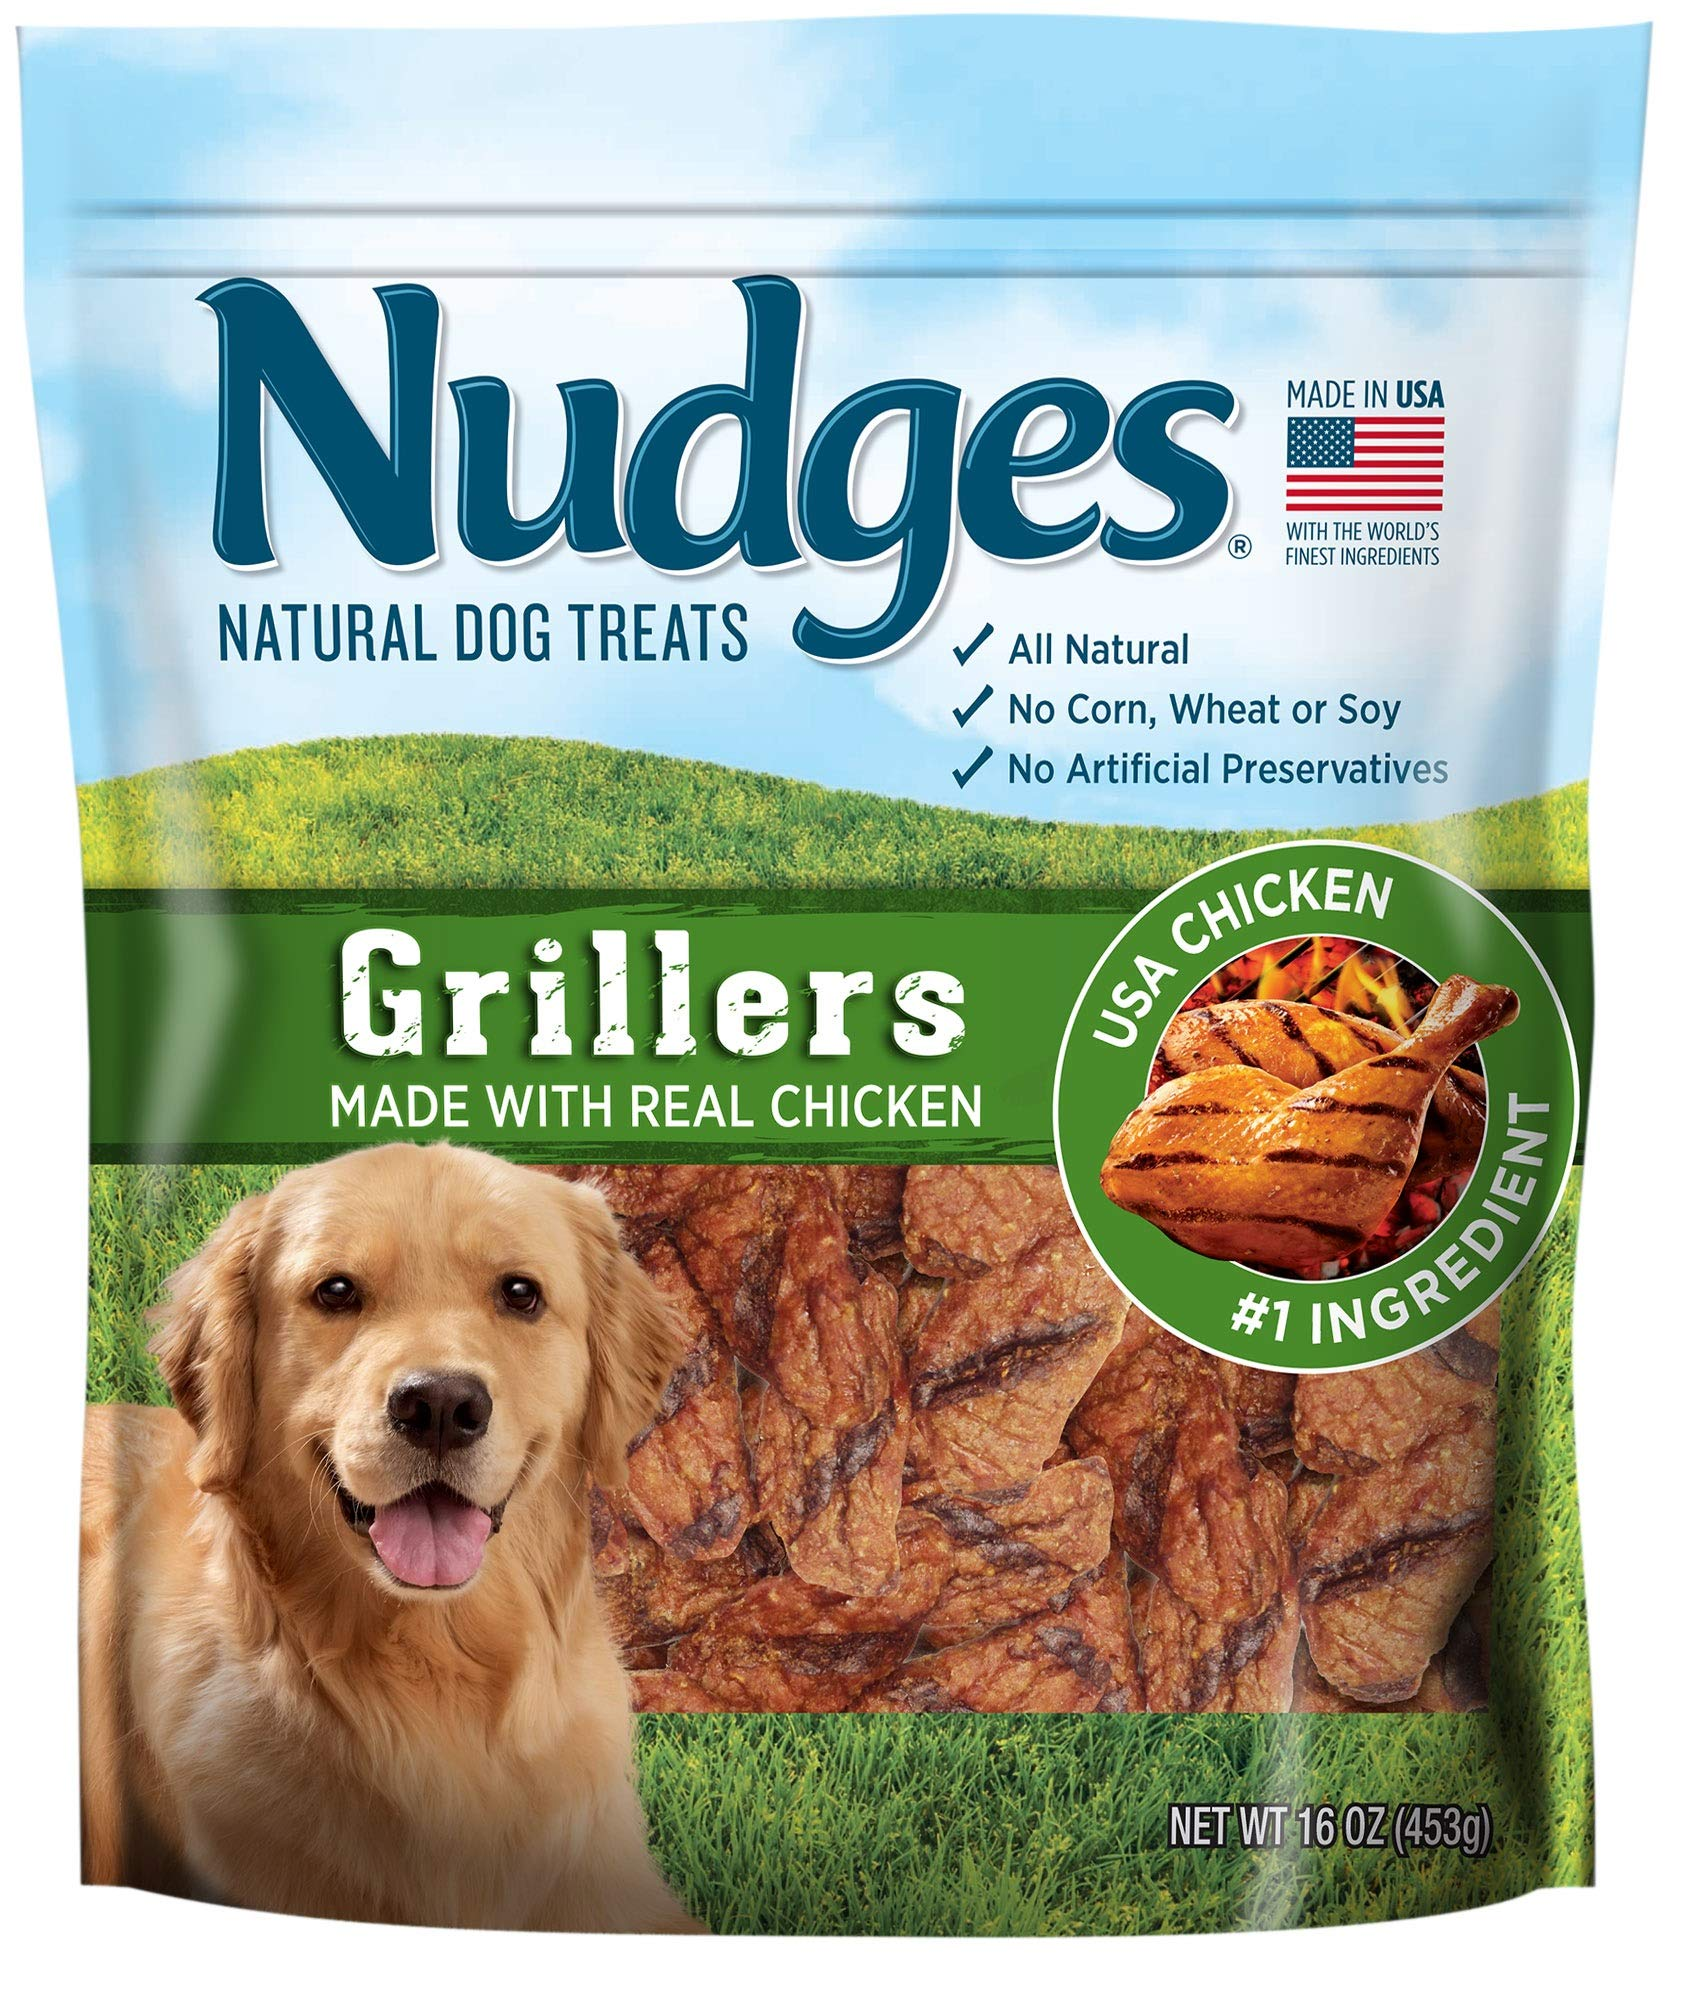 Nudges Natural Dog Treats Grillers Made with Real Chicken